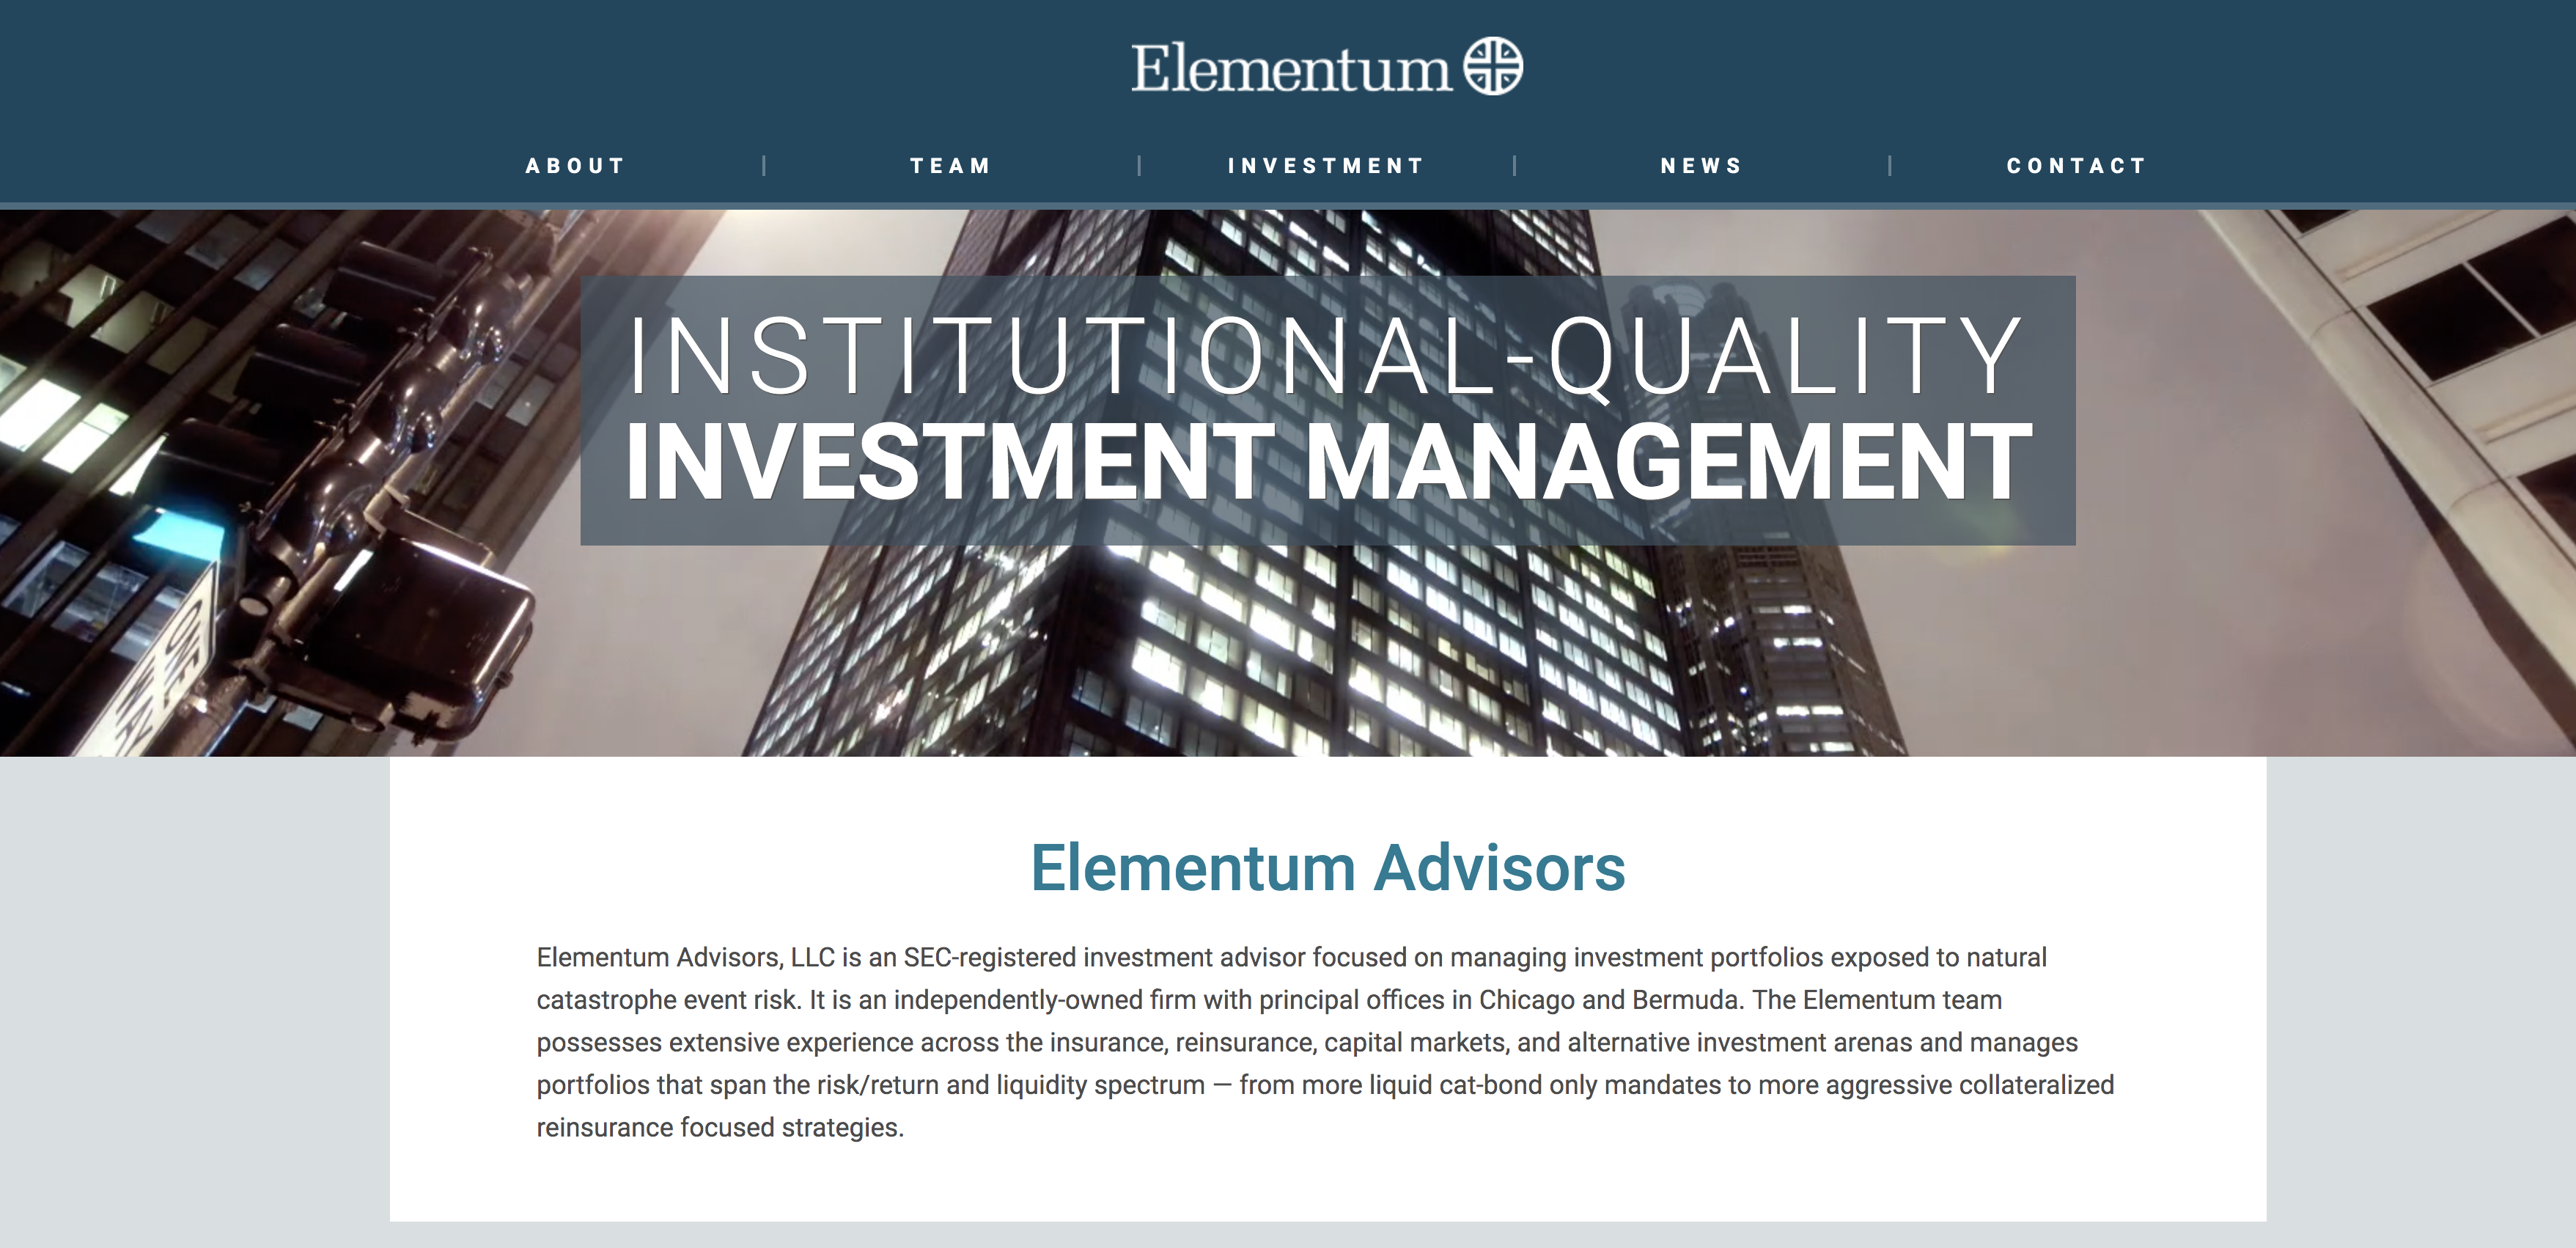 White Mountains Takes Minority Stake in Elementum Advisors